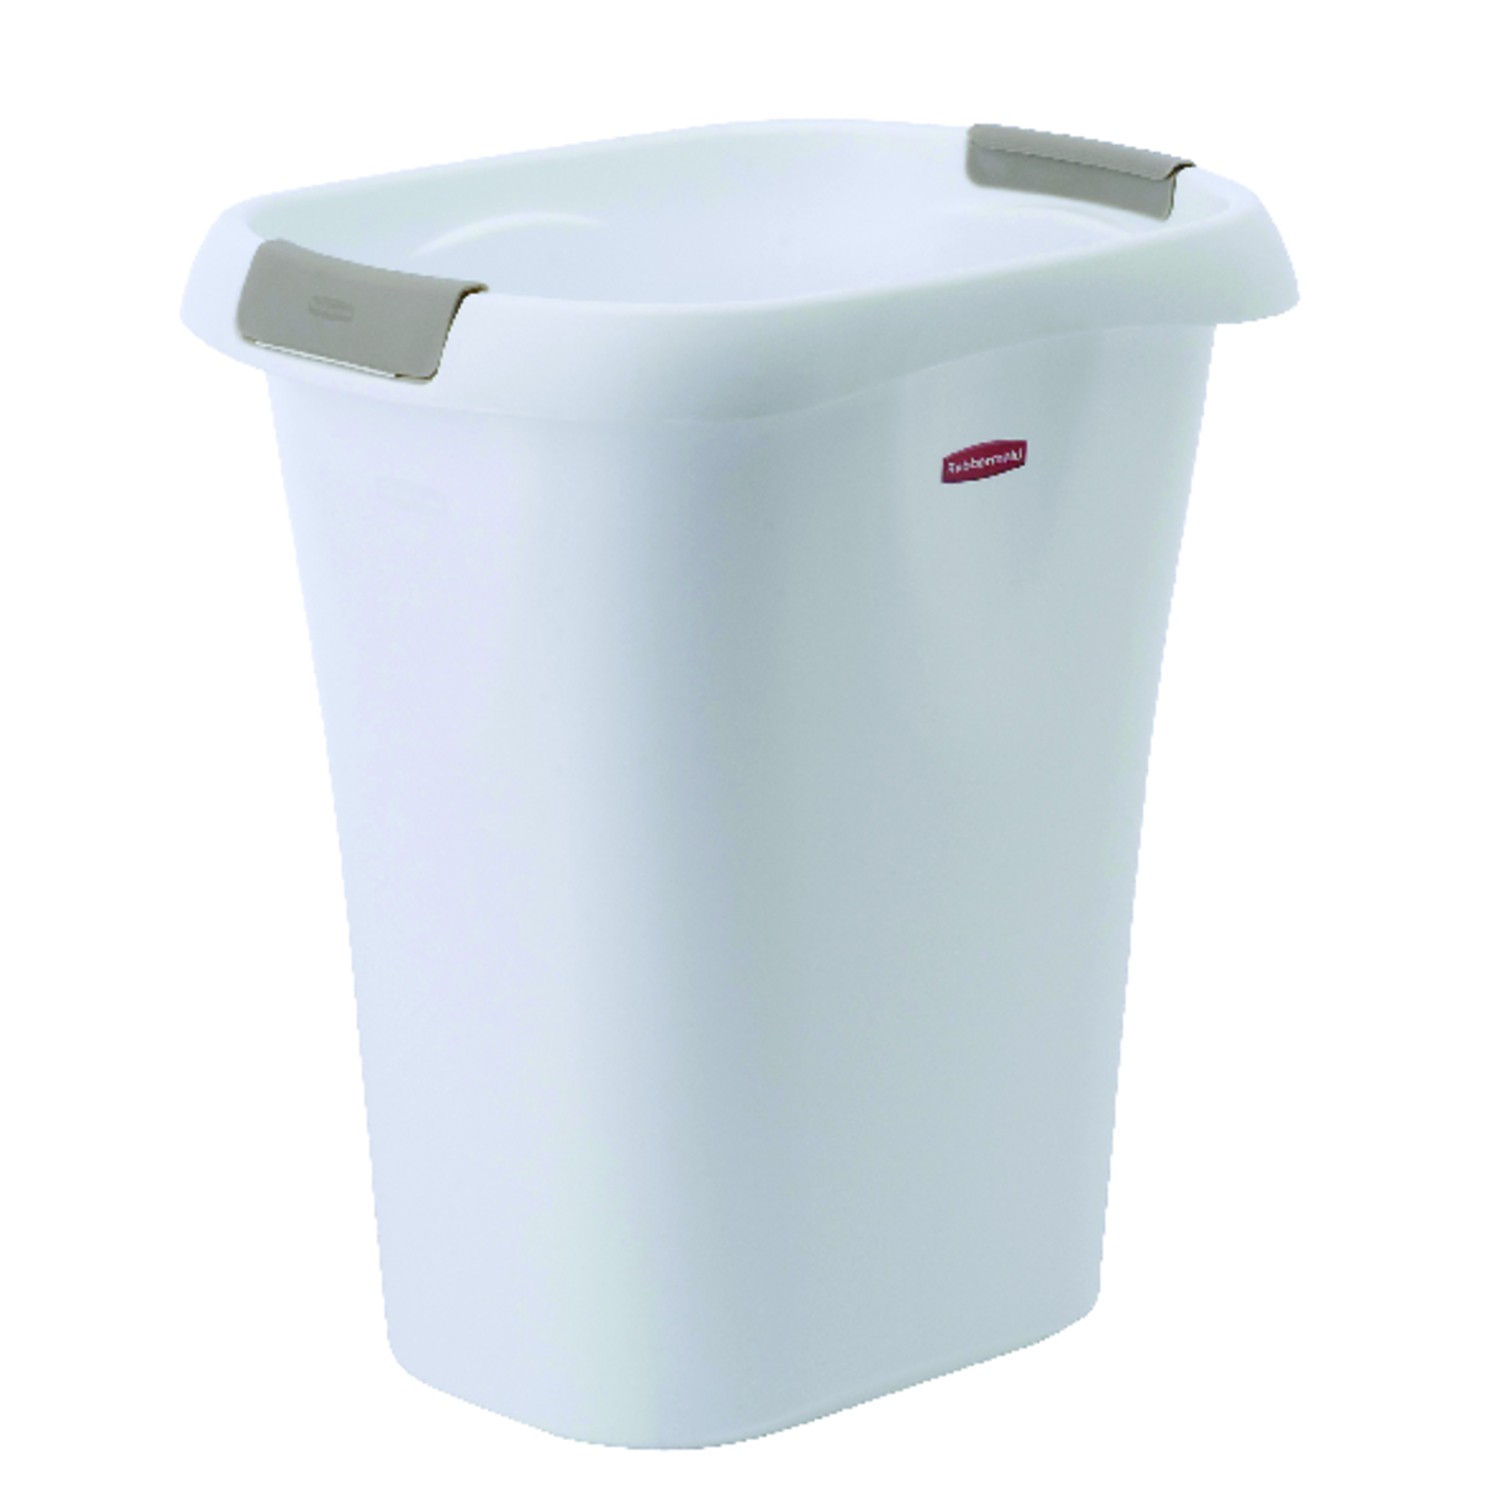 Rubbermaid  21 qt. White  Open Top  Wastebasket